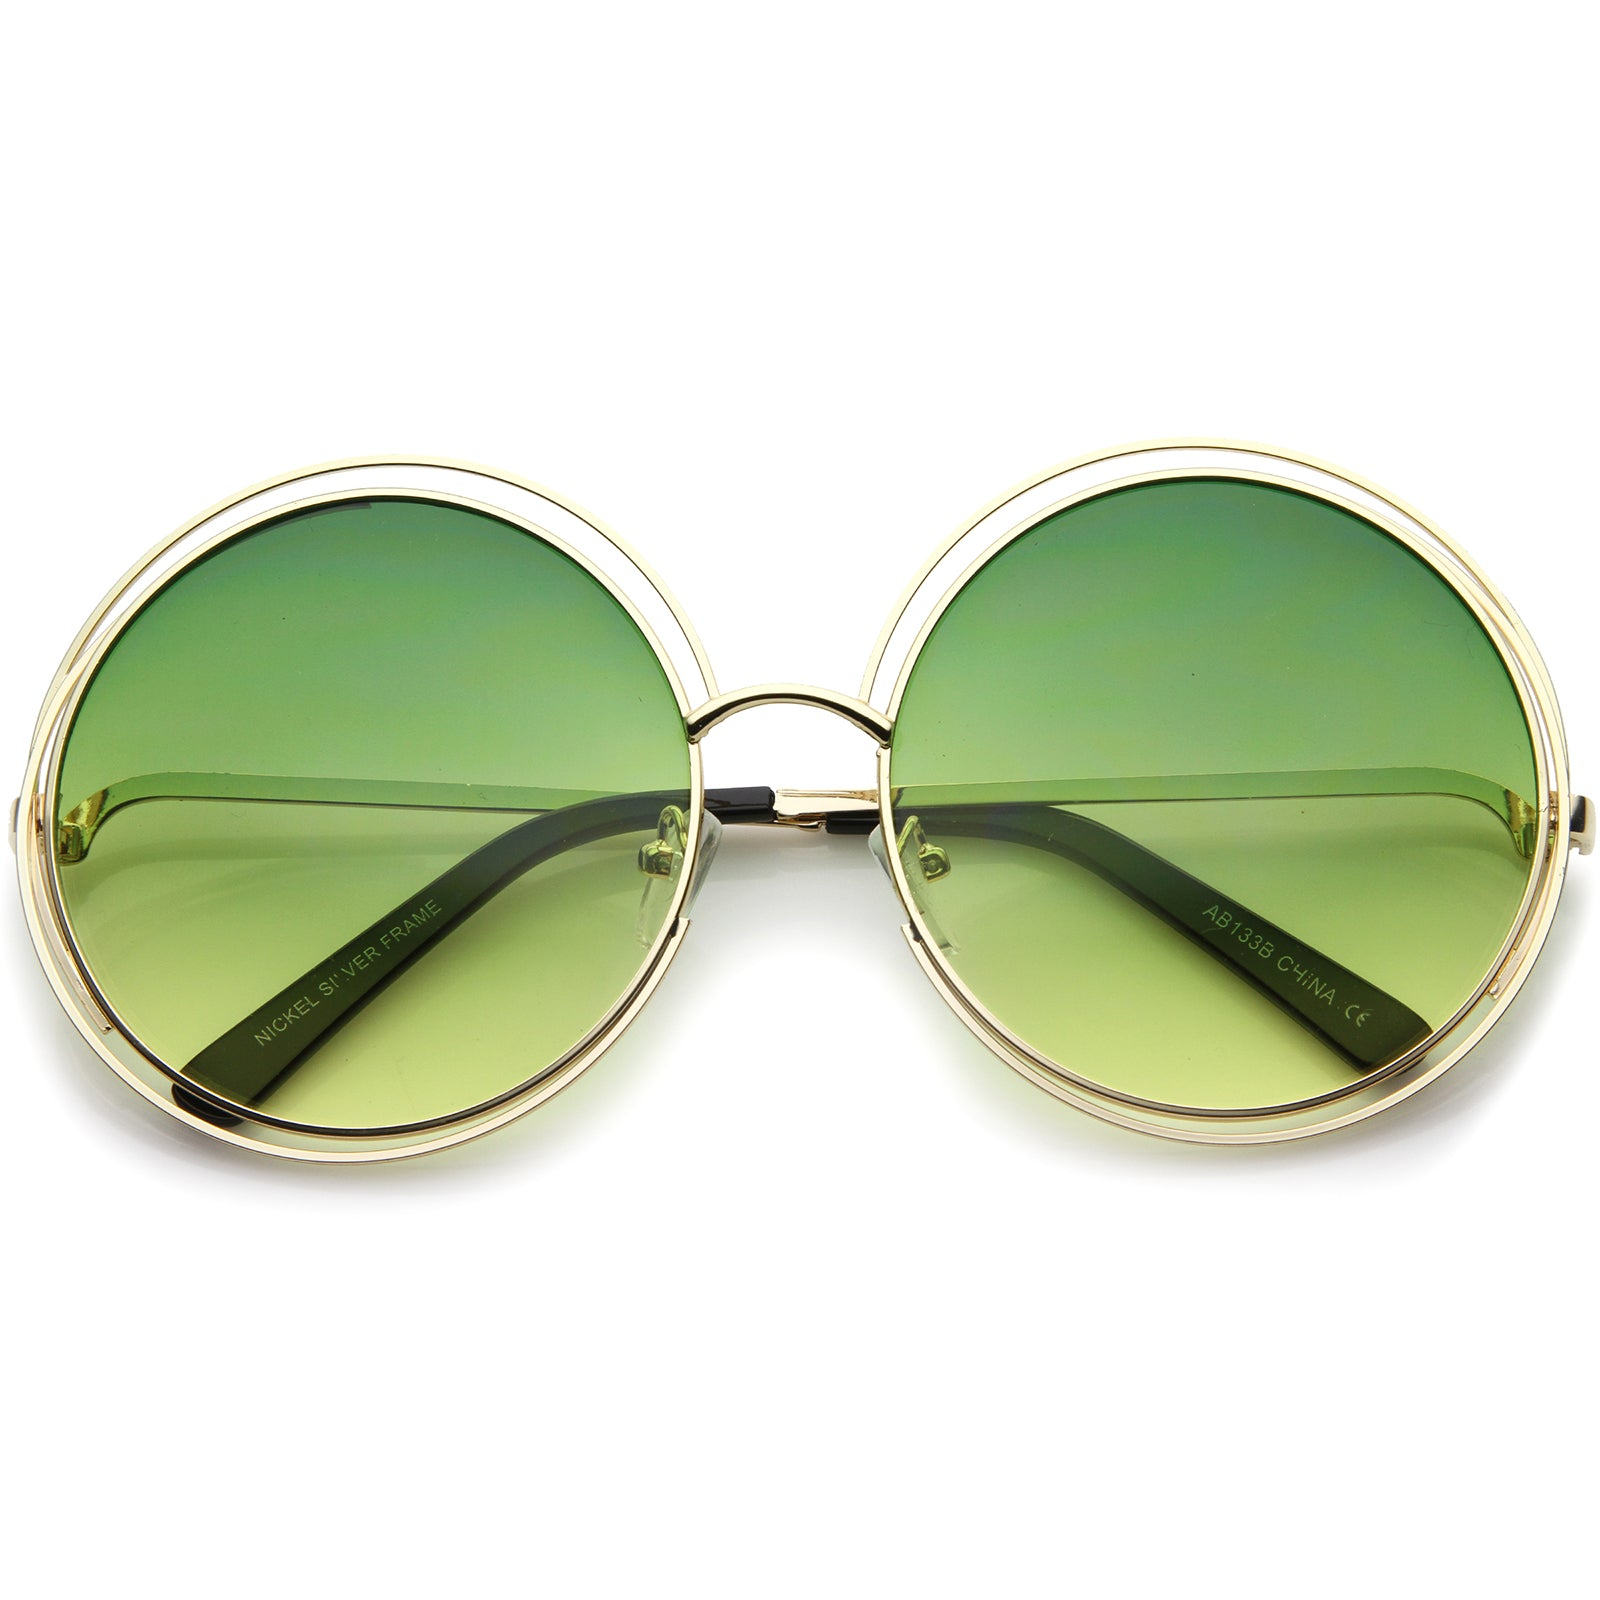 Oversize Wire Frame Gradient Two-Tone Color Lens Round Sunglasses 61mm - sunglass.la - 5